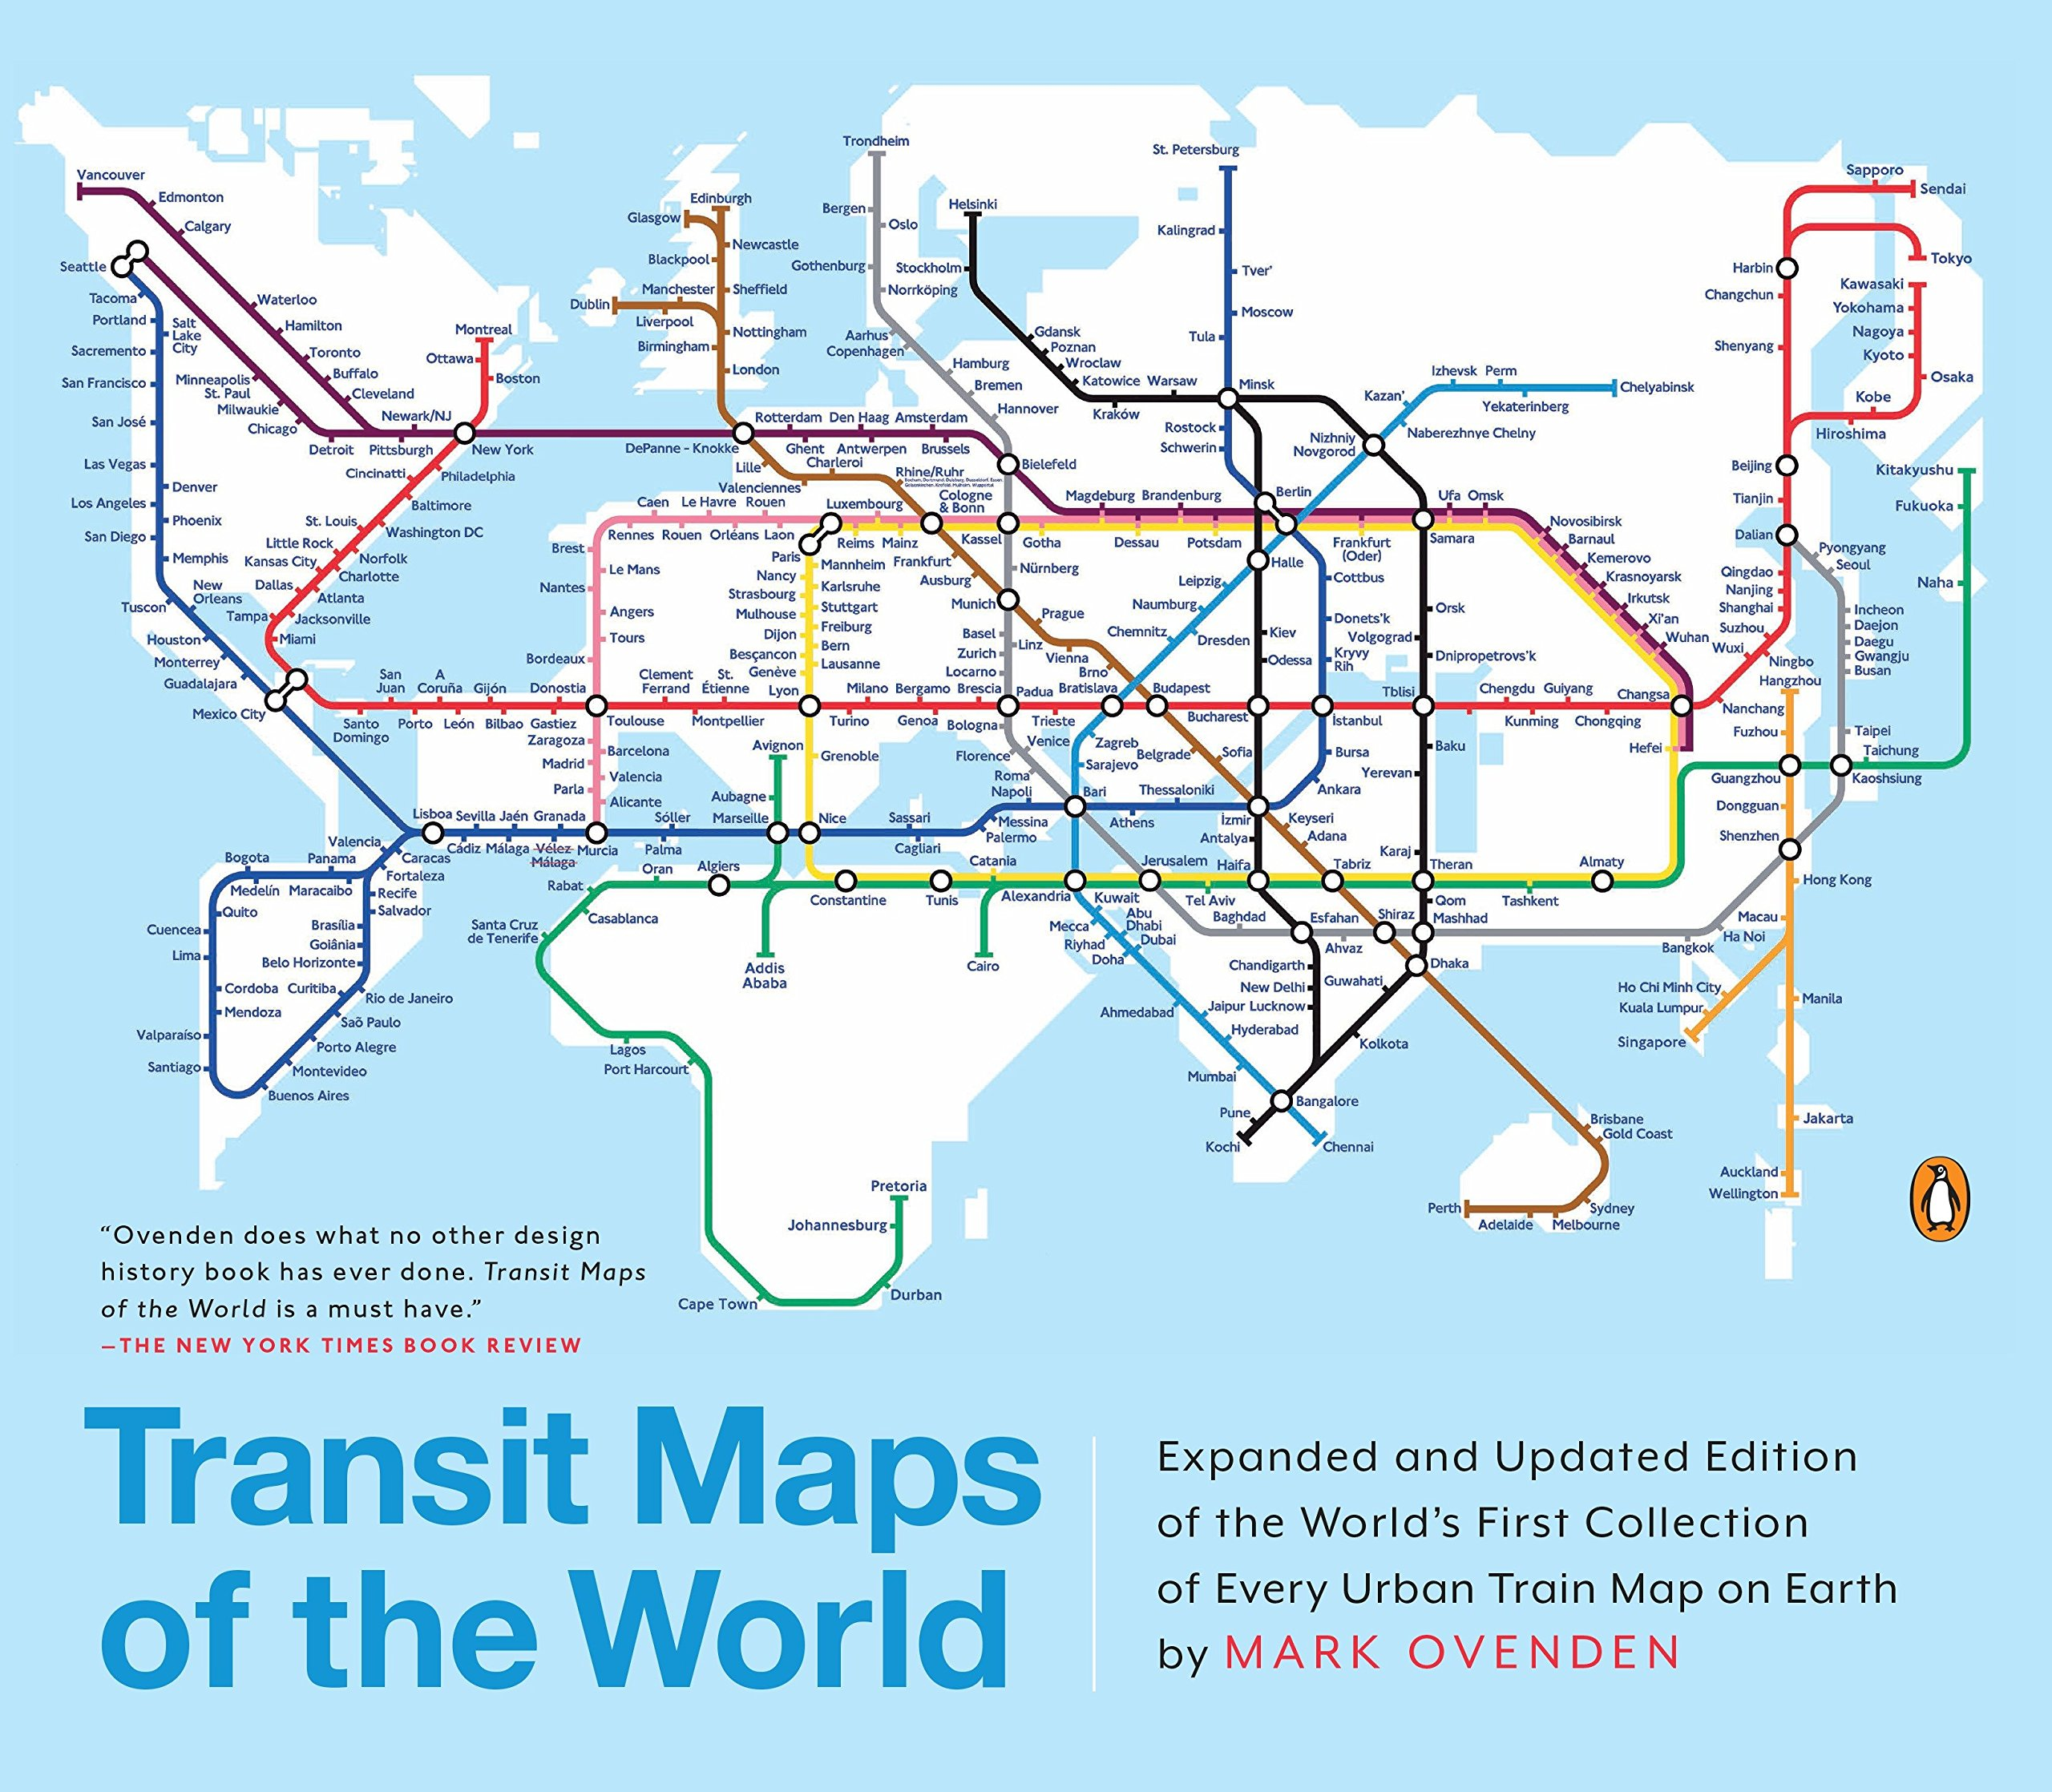 Transit Maps of the World: Expanded and Updated Edition of ... on skagit transit, seattle monorail project, waterfront streetcar, pierce transit, kitsap transit, seattle water taxi map, seattle trolley tours, sound transit map, sound transit, seattle trolley system, amazon south lake union seattle map, seattle center monorail, seattle street map, seattle light rail map, south lake union streetcar, sound transit express buses, seattle skyway map, seattle trolleybus map, seattle land value map, trolleybuses in seattle, seattle metro trip planner, west seattle water taxi, seattle schools map, seattle commuter rail map, seattle heavy rail map, seattle tree map, intercity transit, first hill streetcar, downtown seattle transit tunnel, seattle monorail map, link light rail, seattle star map, swift bus rapid transit, everett transit, massachusetts bay transportation authority map, community transit, seattle car map, seattle park map, metro transit,